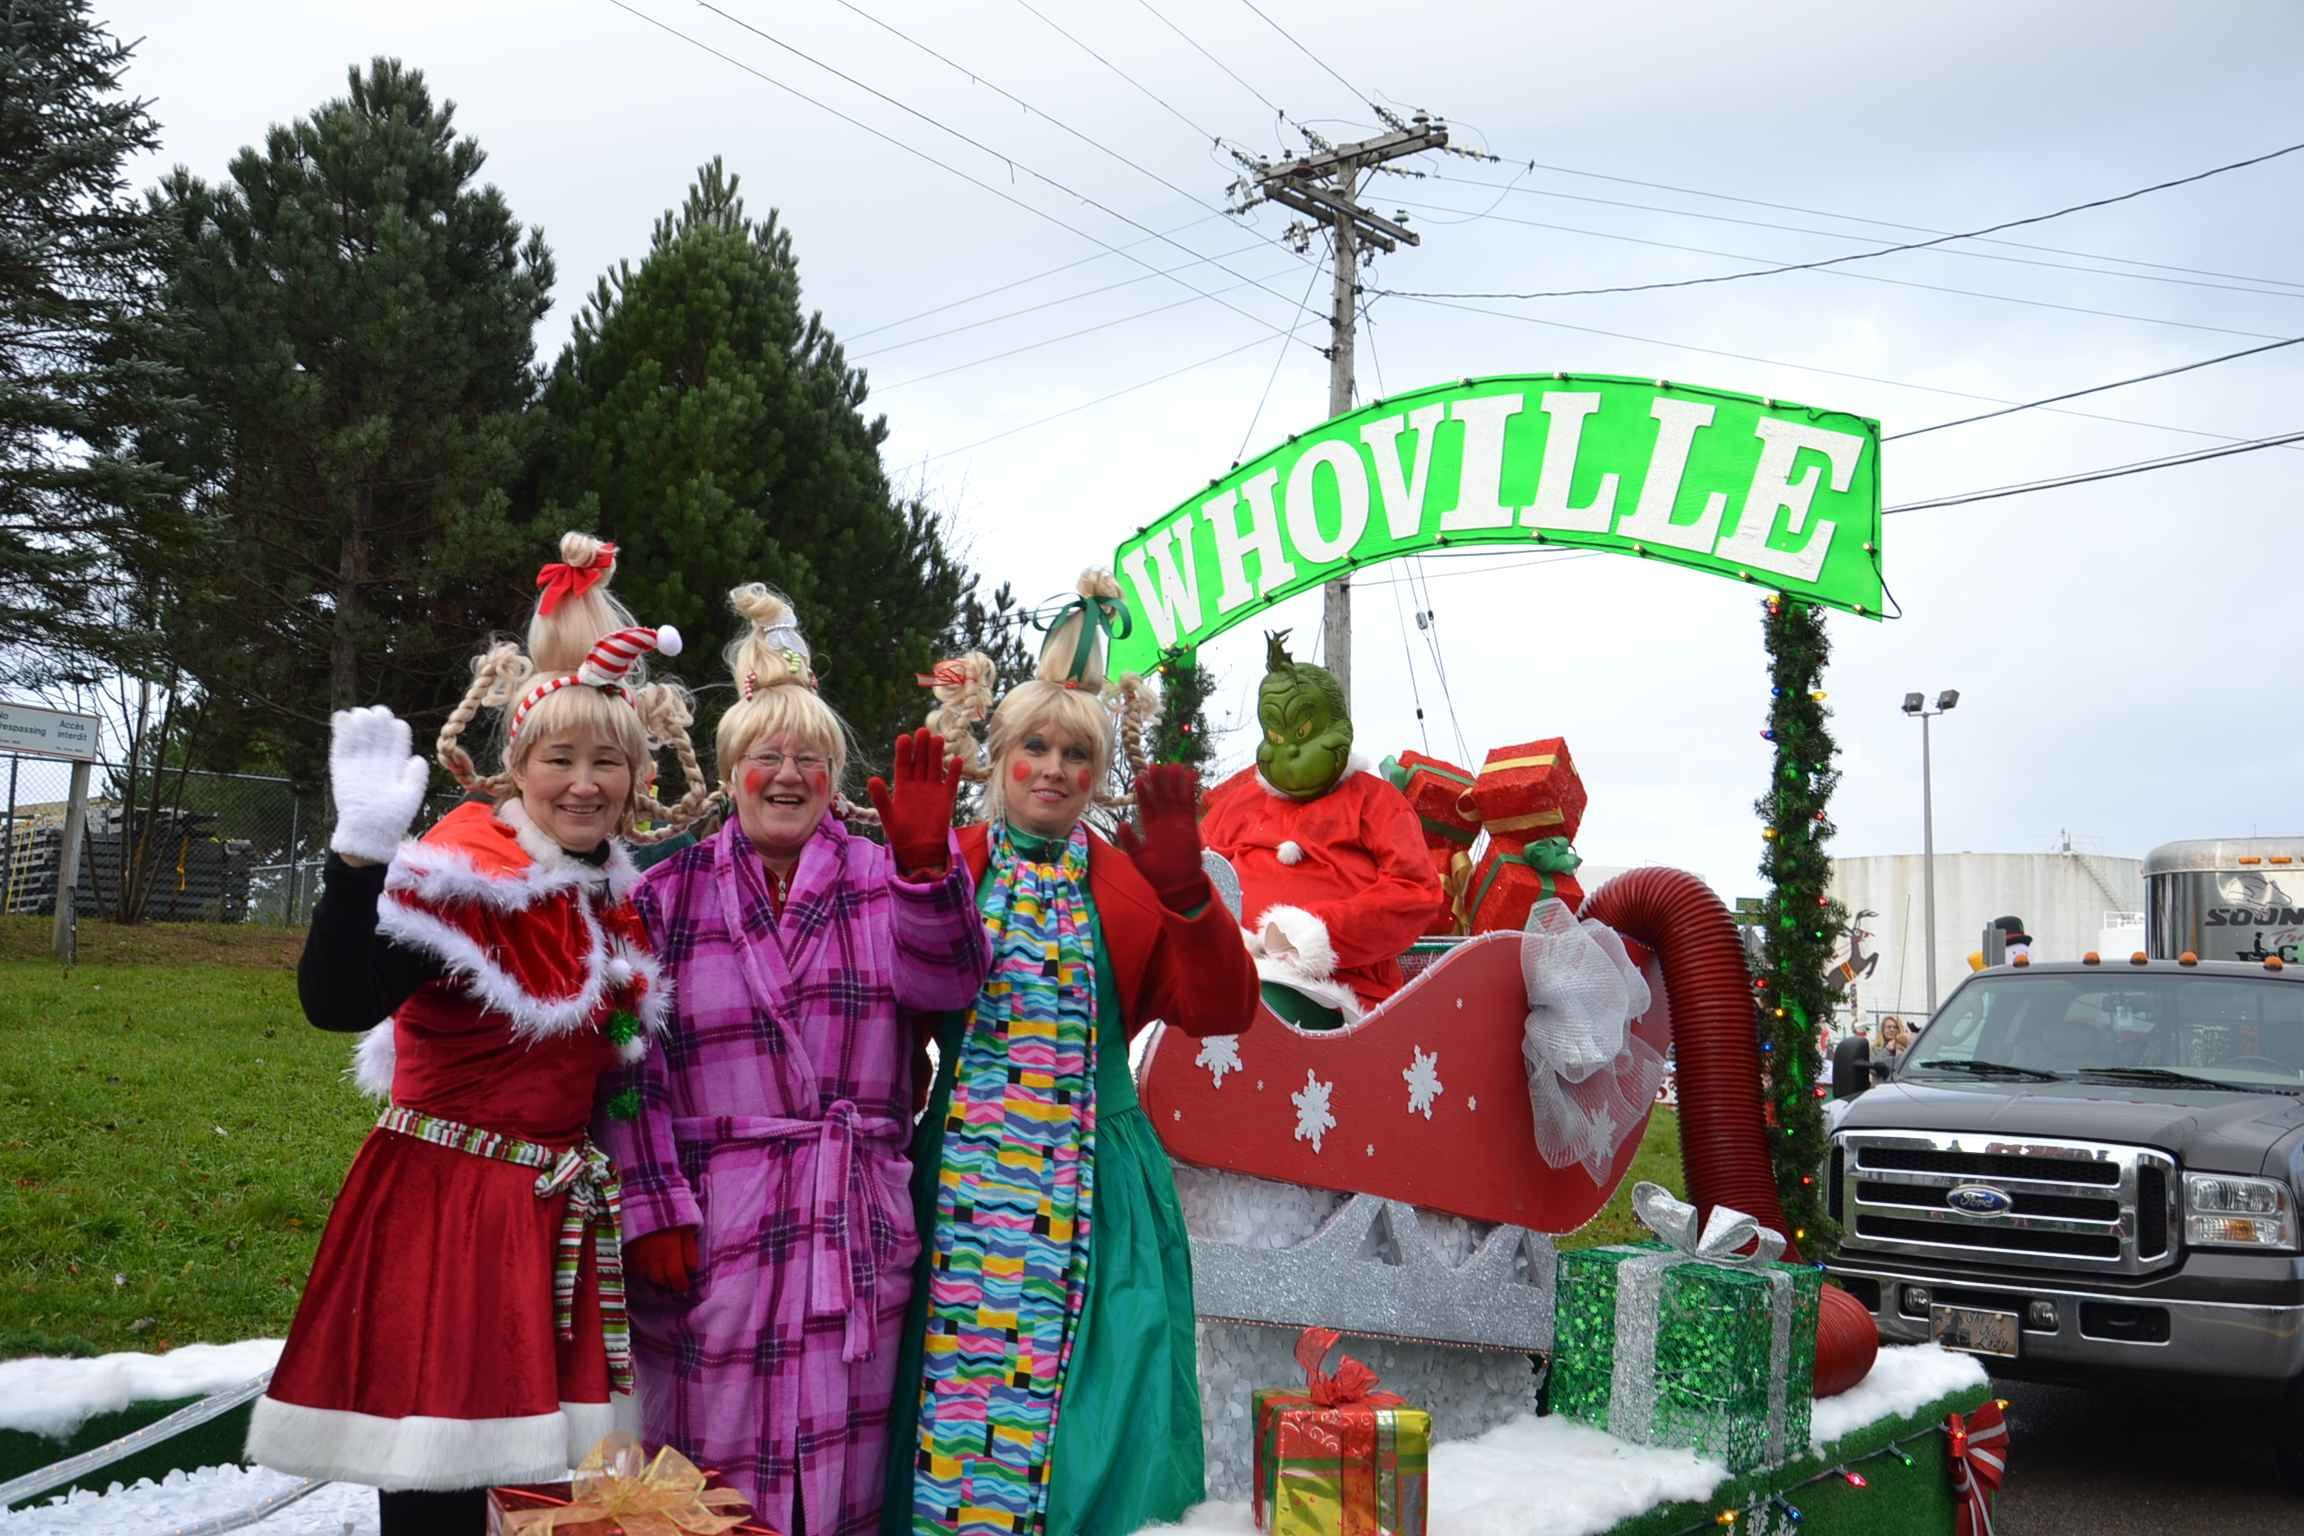 The Grinch Christmas Float Ideas.Christmas Parade Floats Themes Theme For The Meco Float